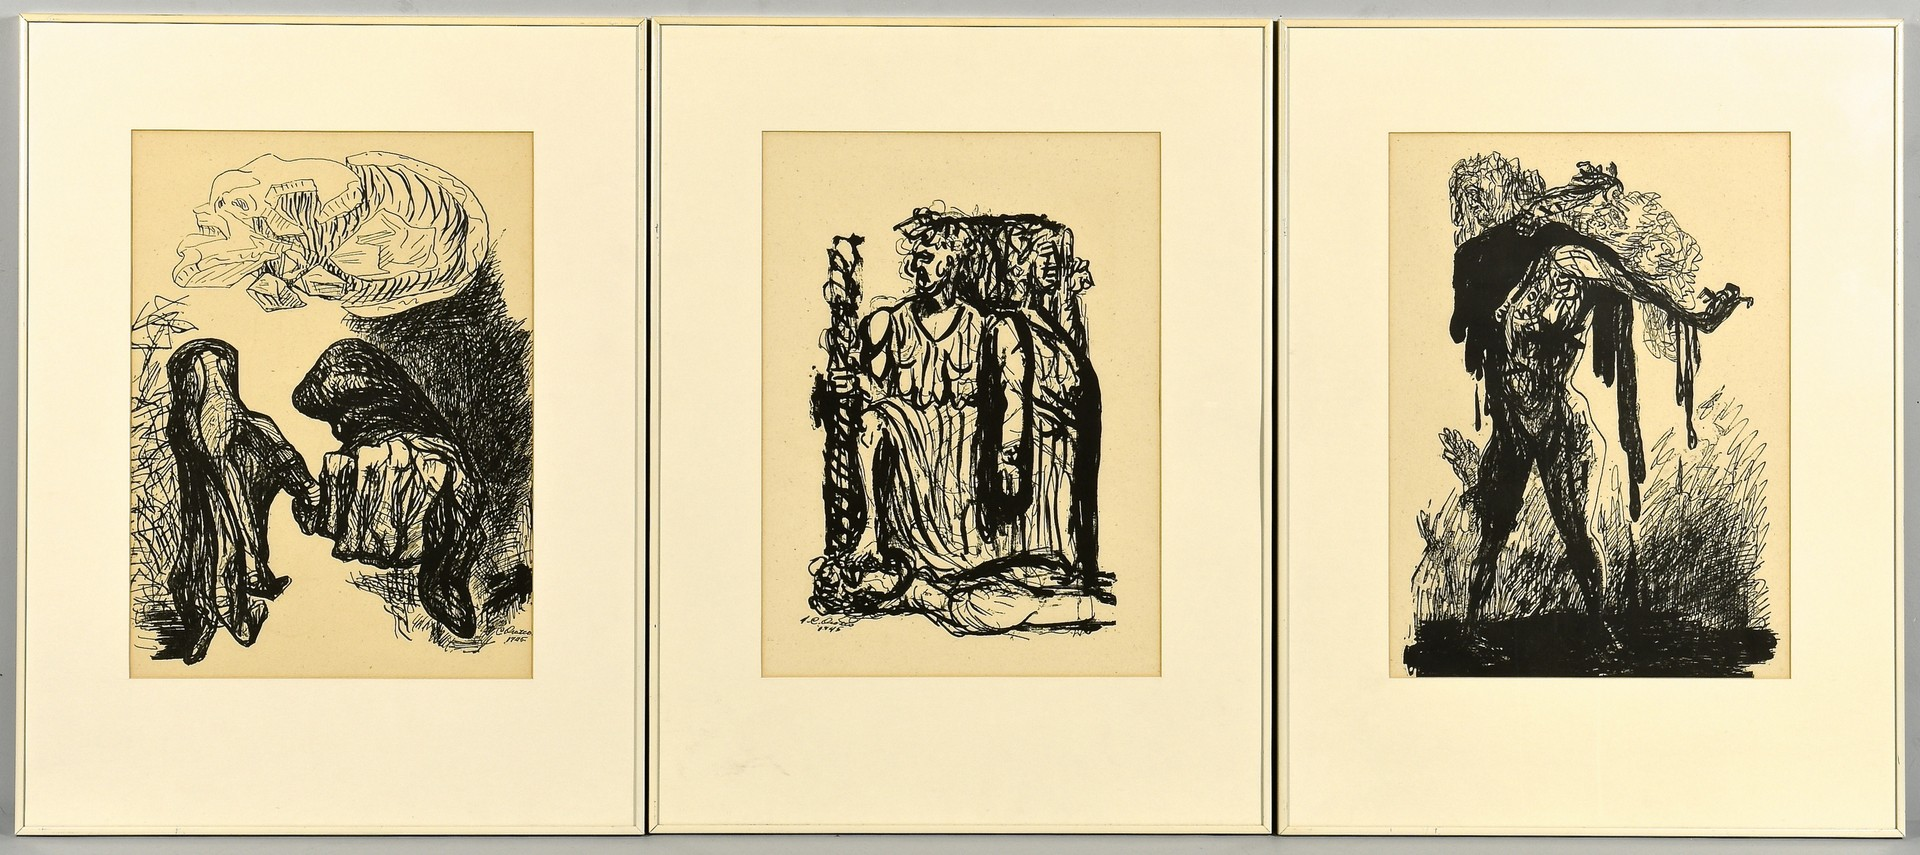 Lot 856: 3 Jose Orozco Lithographs, dated 1945